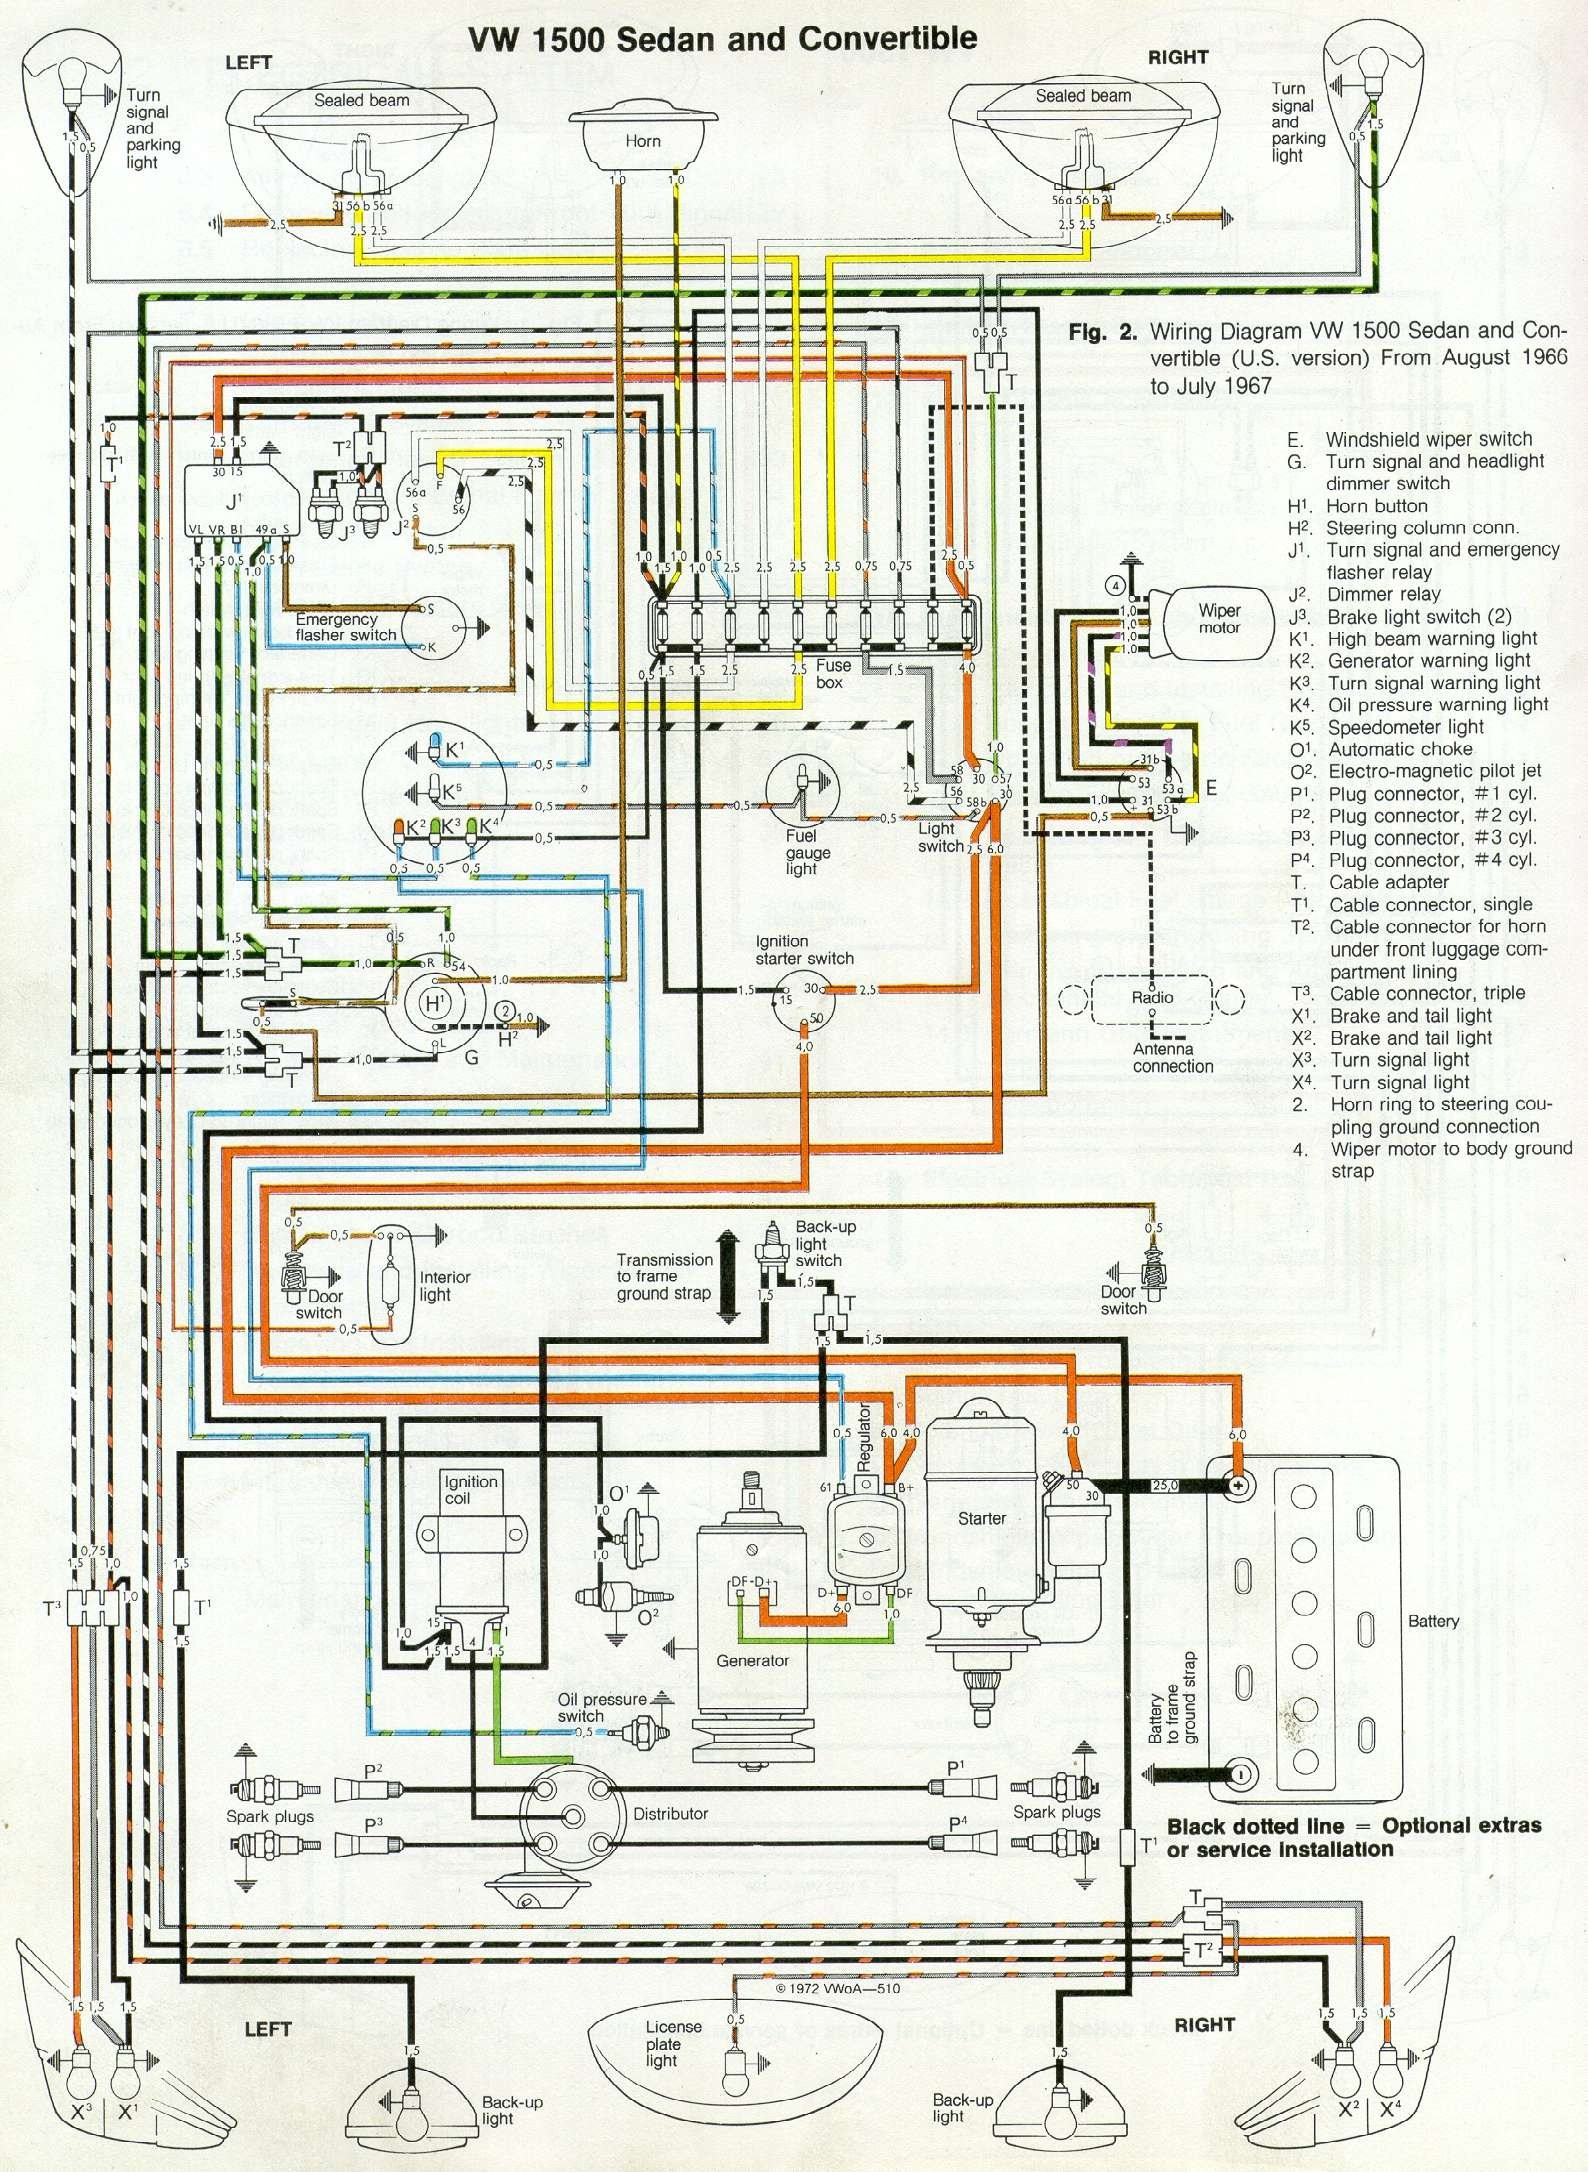 VW Beetle Wiring Digram 67 beetle wiring diagram u s version 1967 vw beetle vw bug wiring diagram at bayanpartner.co